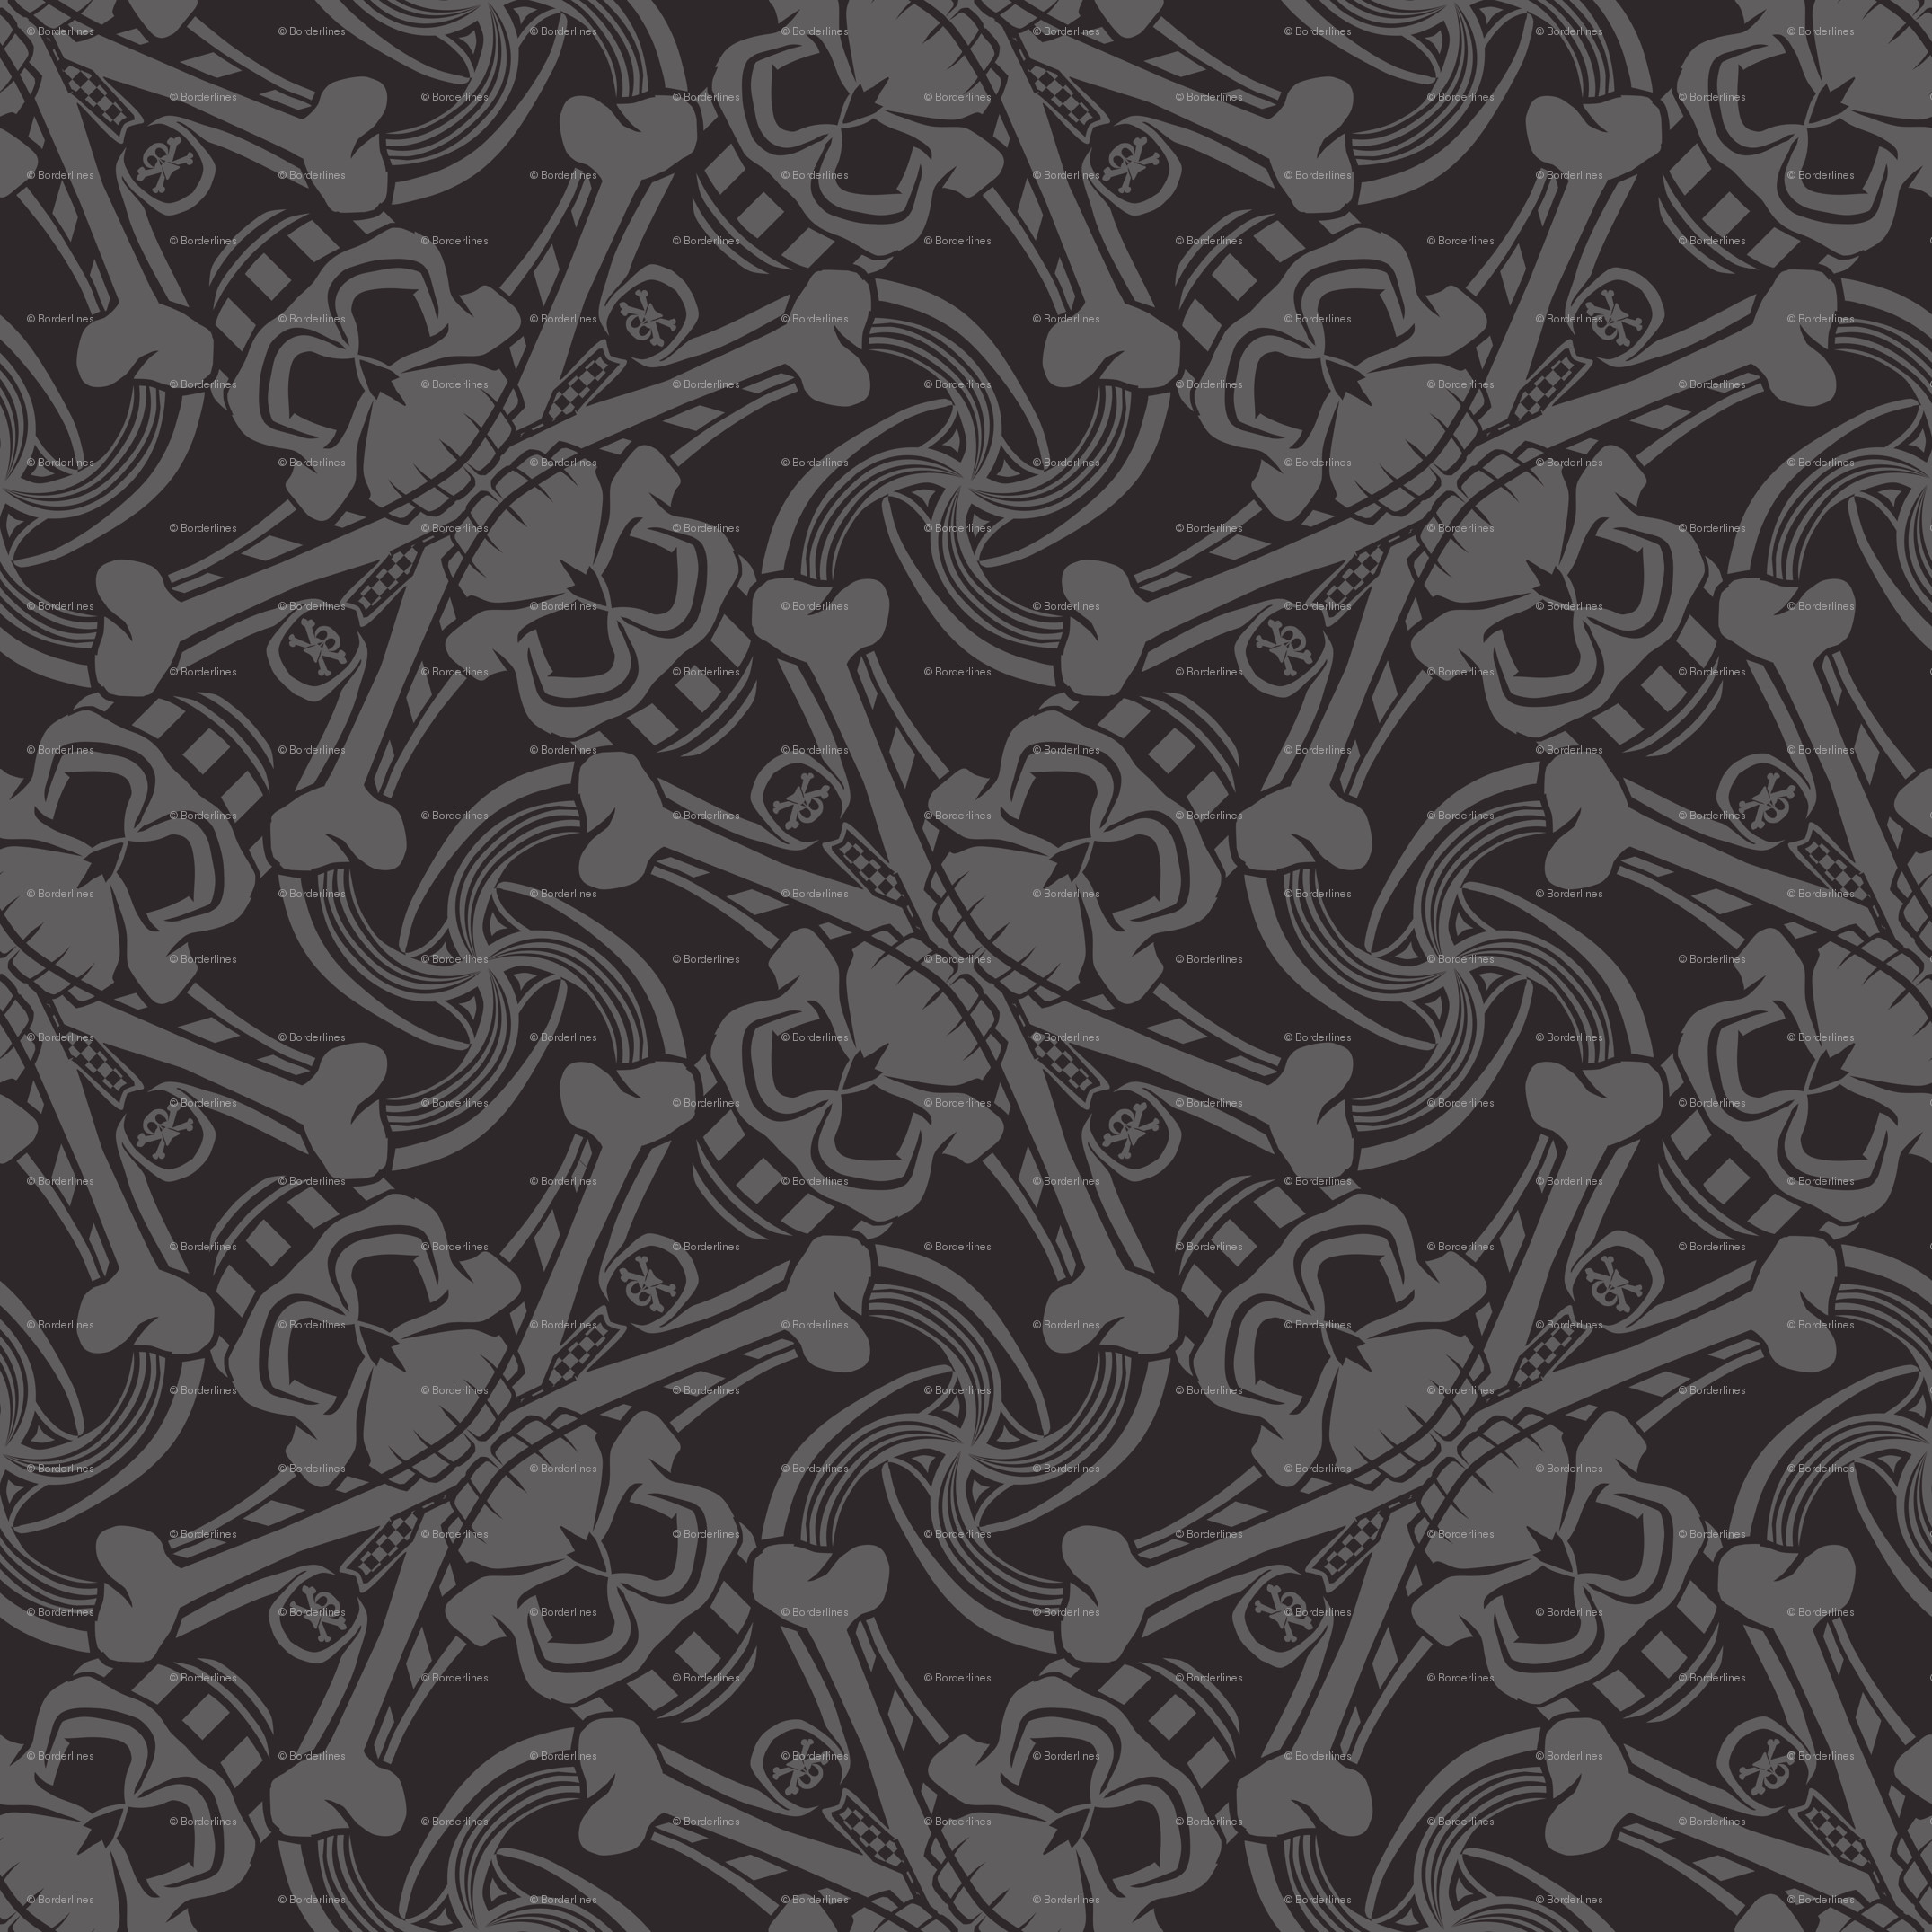 Res: 2151x2151, ☆ PIRATE SKULL PLAID ☆ Black and Gray - Small Scale / Collection : Funky  Pirates - Skull and Crossbones Prints 2 wallpaper - borderlines -  Spoonflower